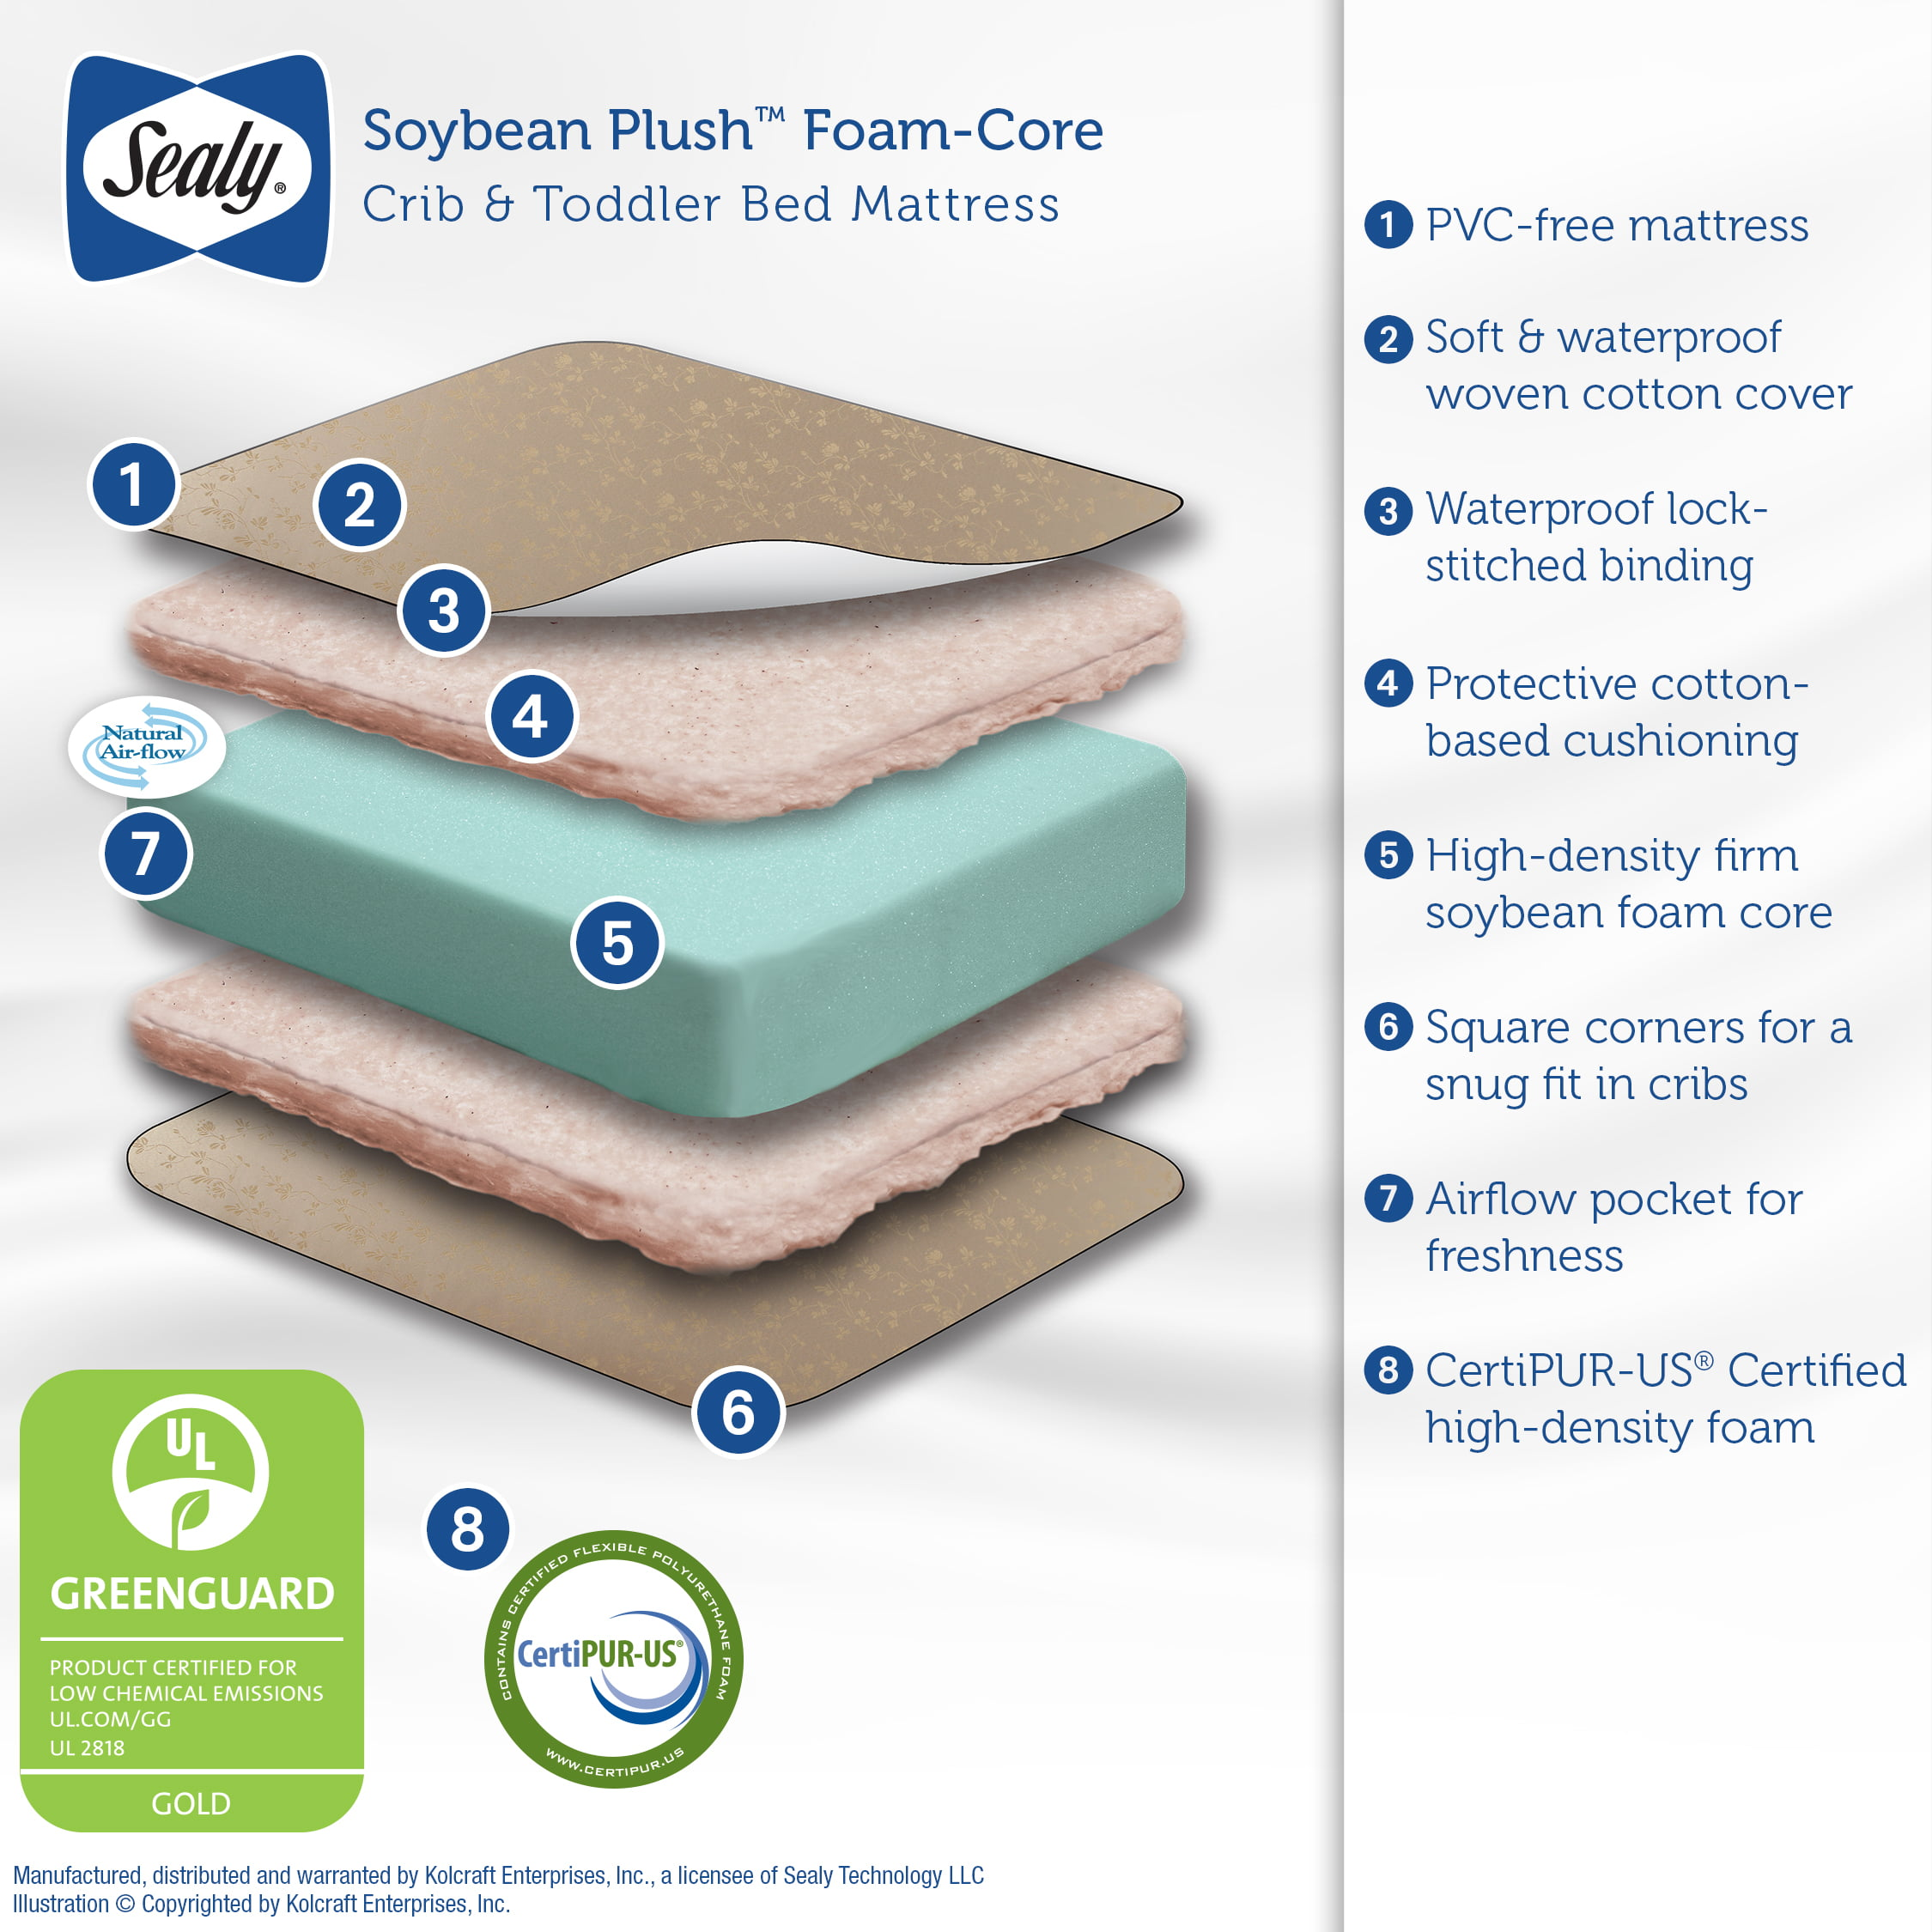 Sealy Soybean Plush Crib And Toddler Mattress Cotton Cover Soy Foam Walmart Com Walmart Com